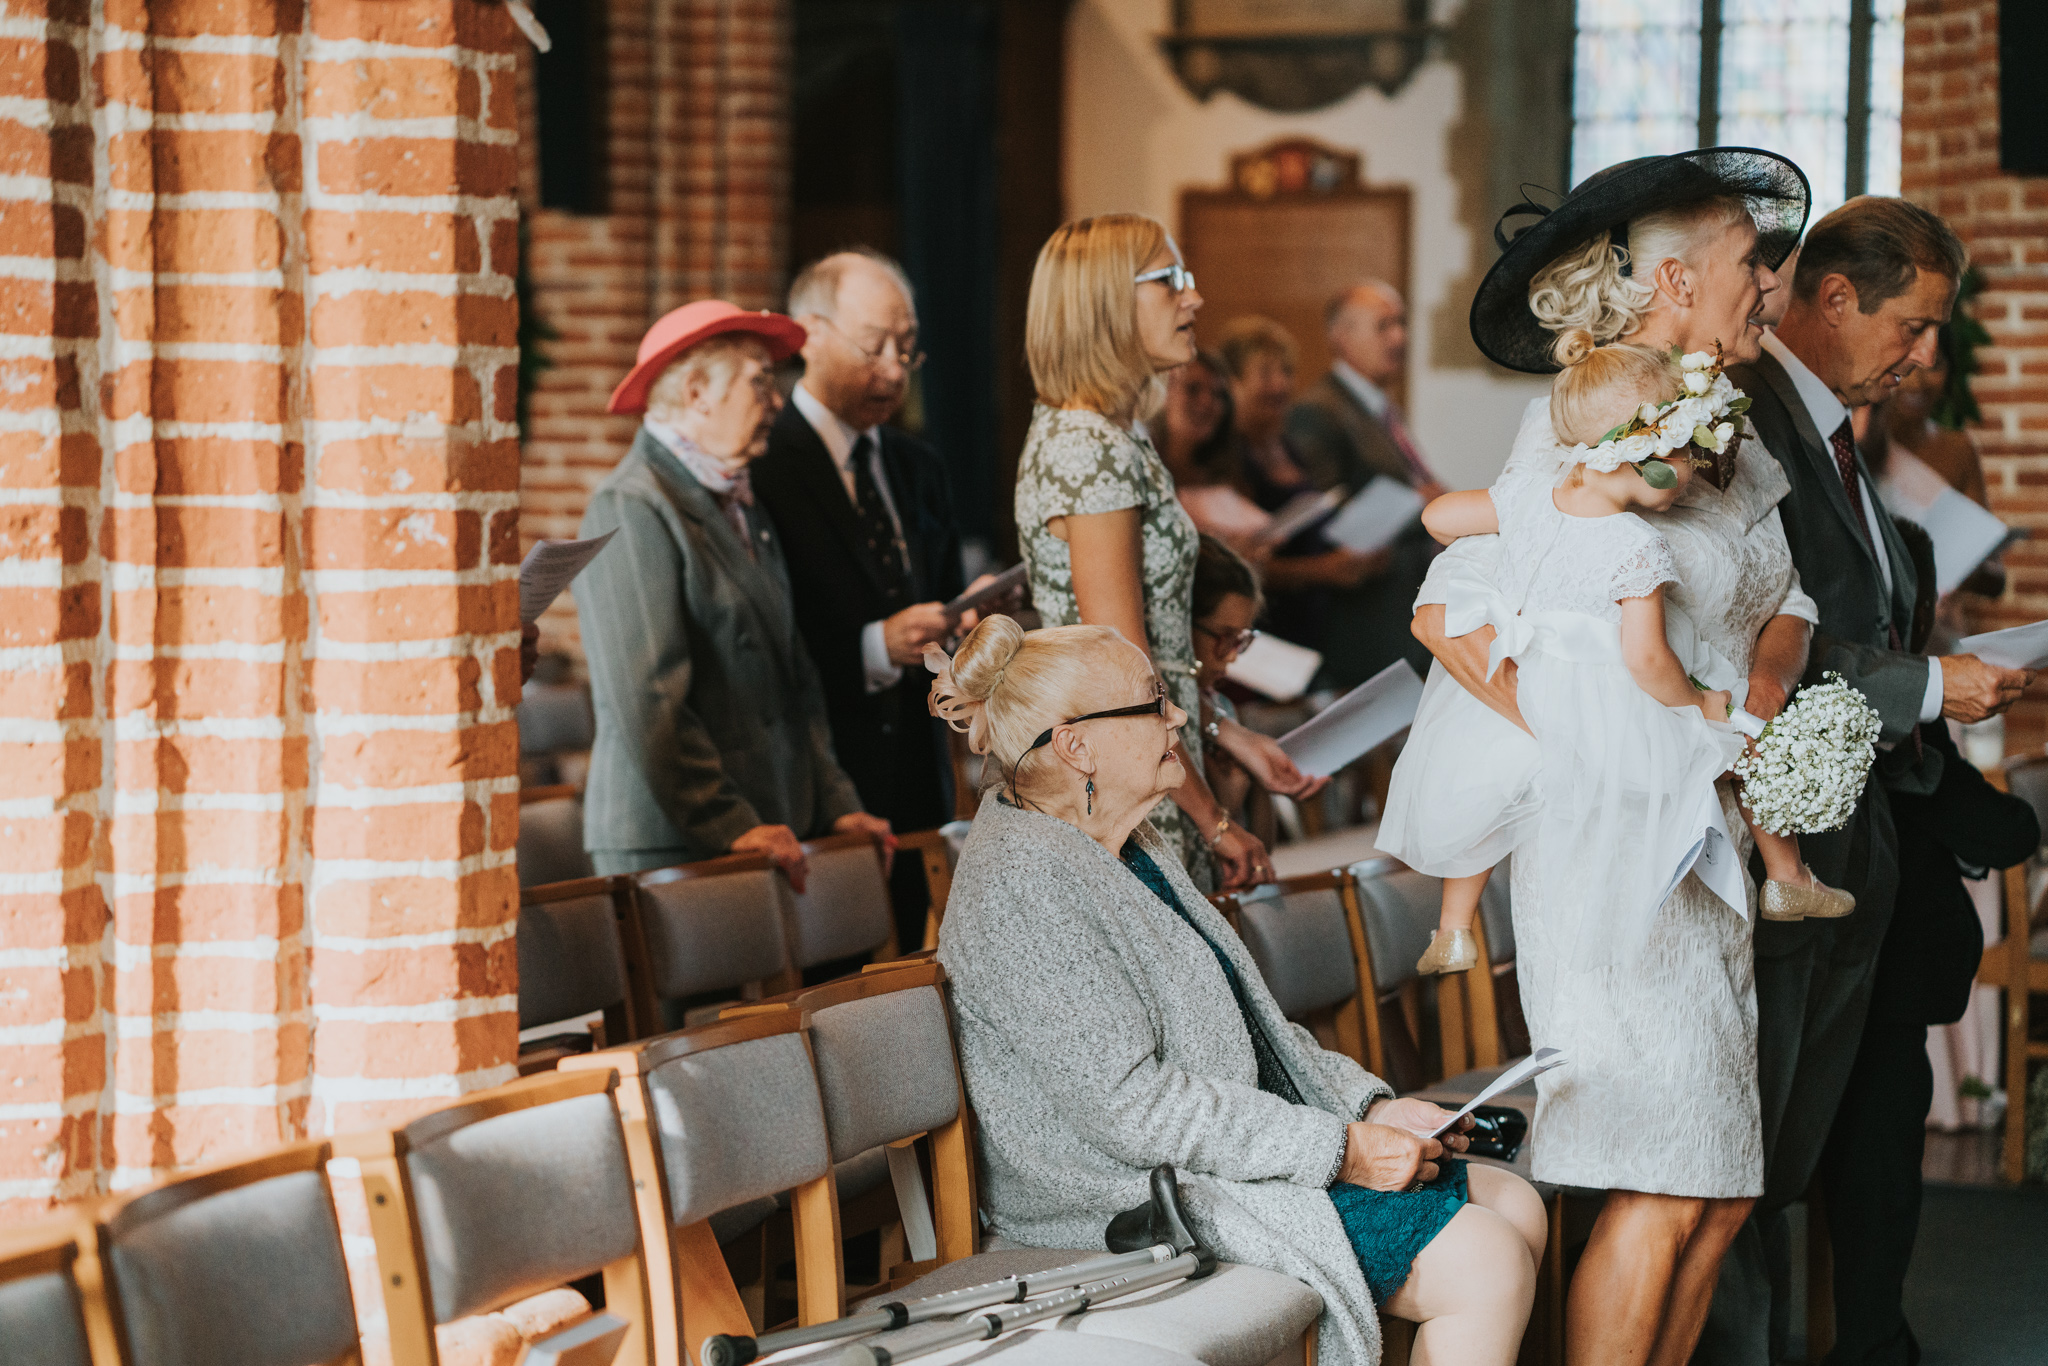 intimate-english-church-wedding-sarah-alex-colchester-essex-grace-elizabeth-colchester-essex-alternative-wedding-lifestyle-photographer-essex-suffolk-norfolk-devon (42 of 92).jpg